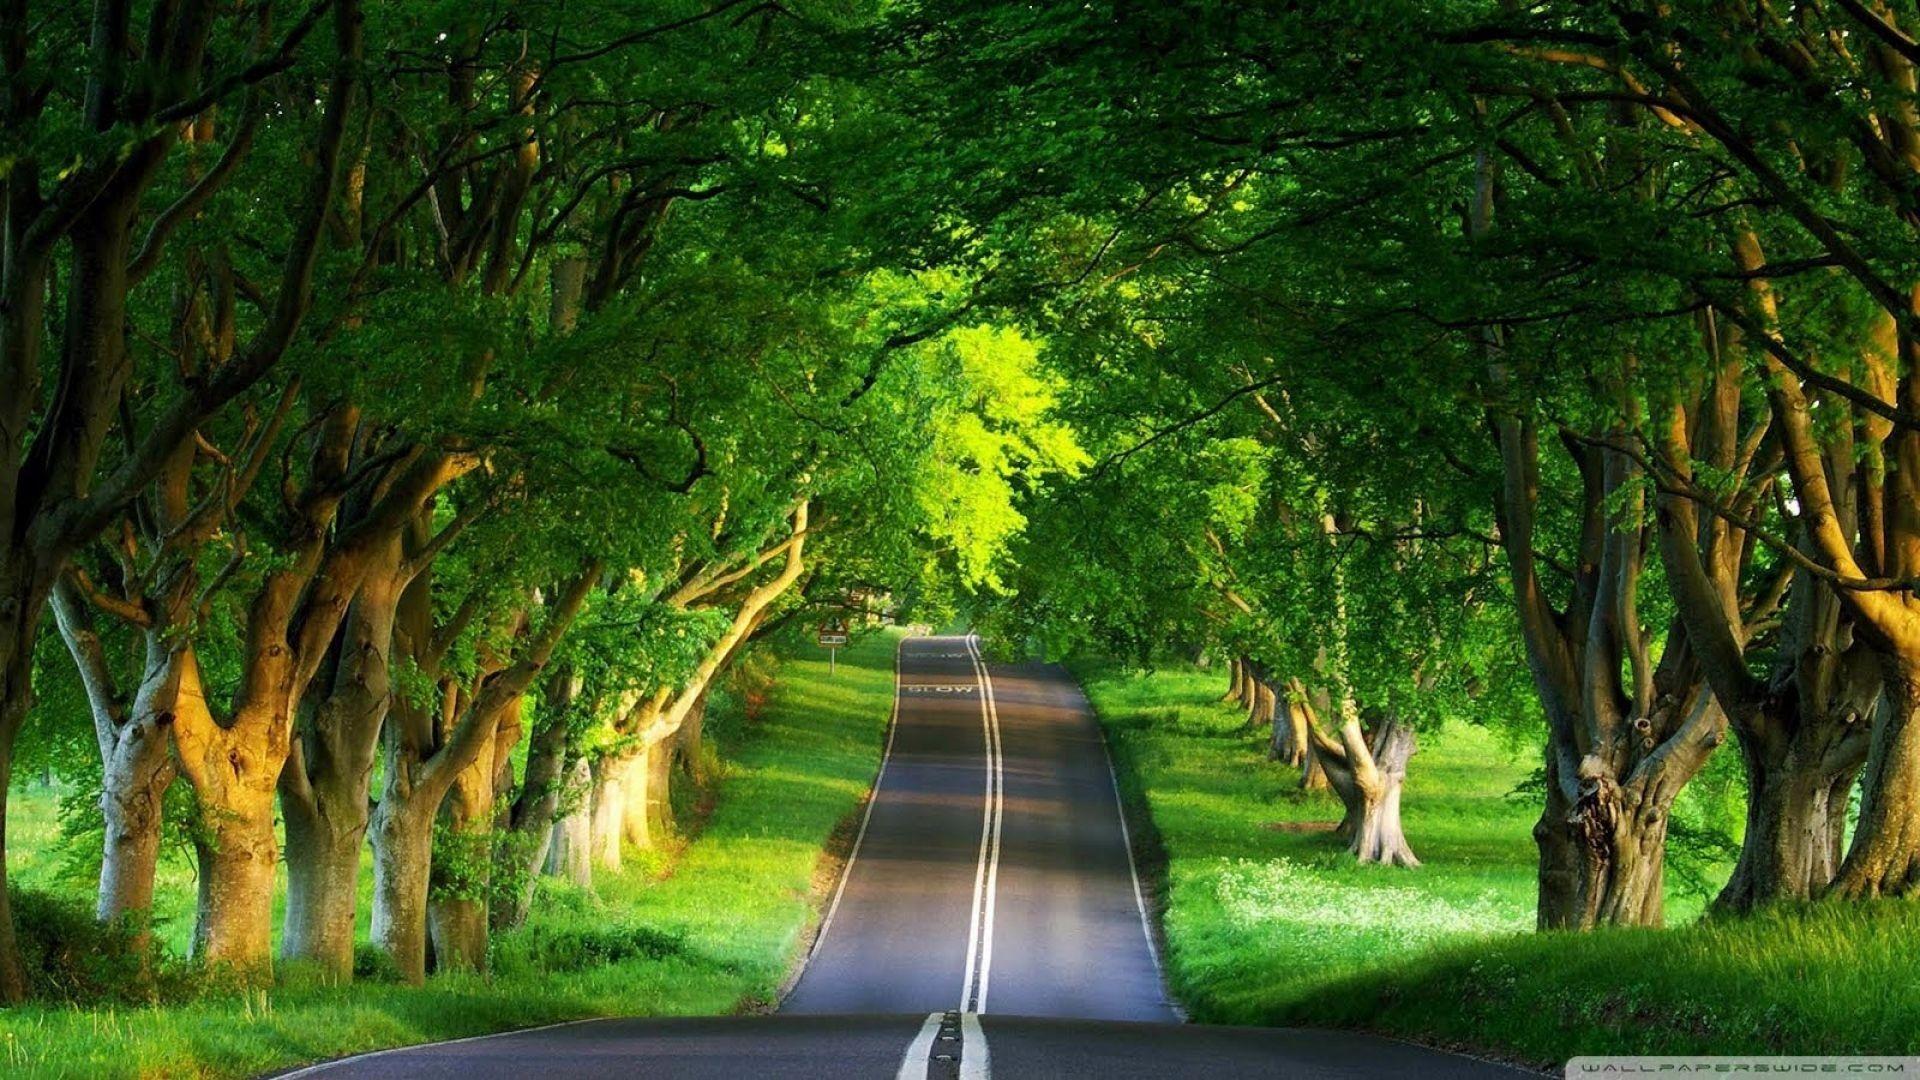 Awesome Tree And Road Wallpaper Pemandangan Fotografi Pantai Latar Belakang